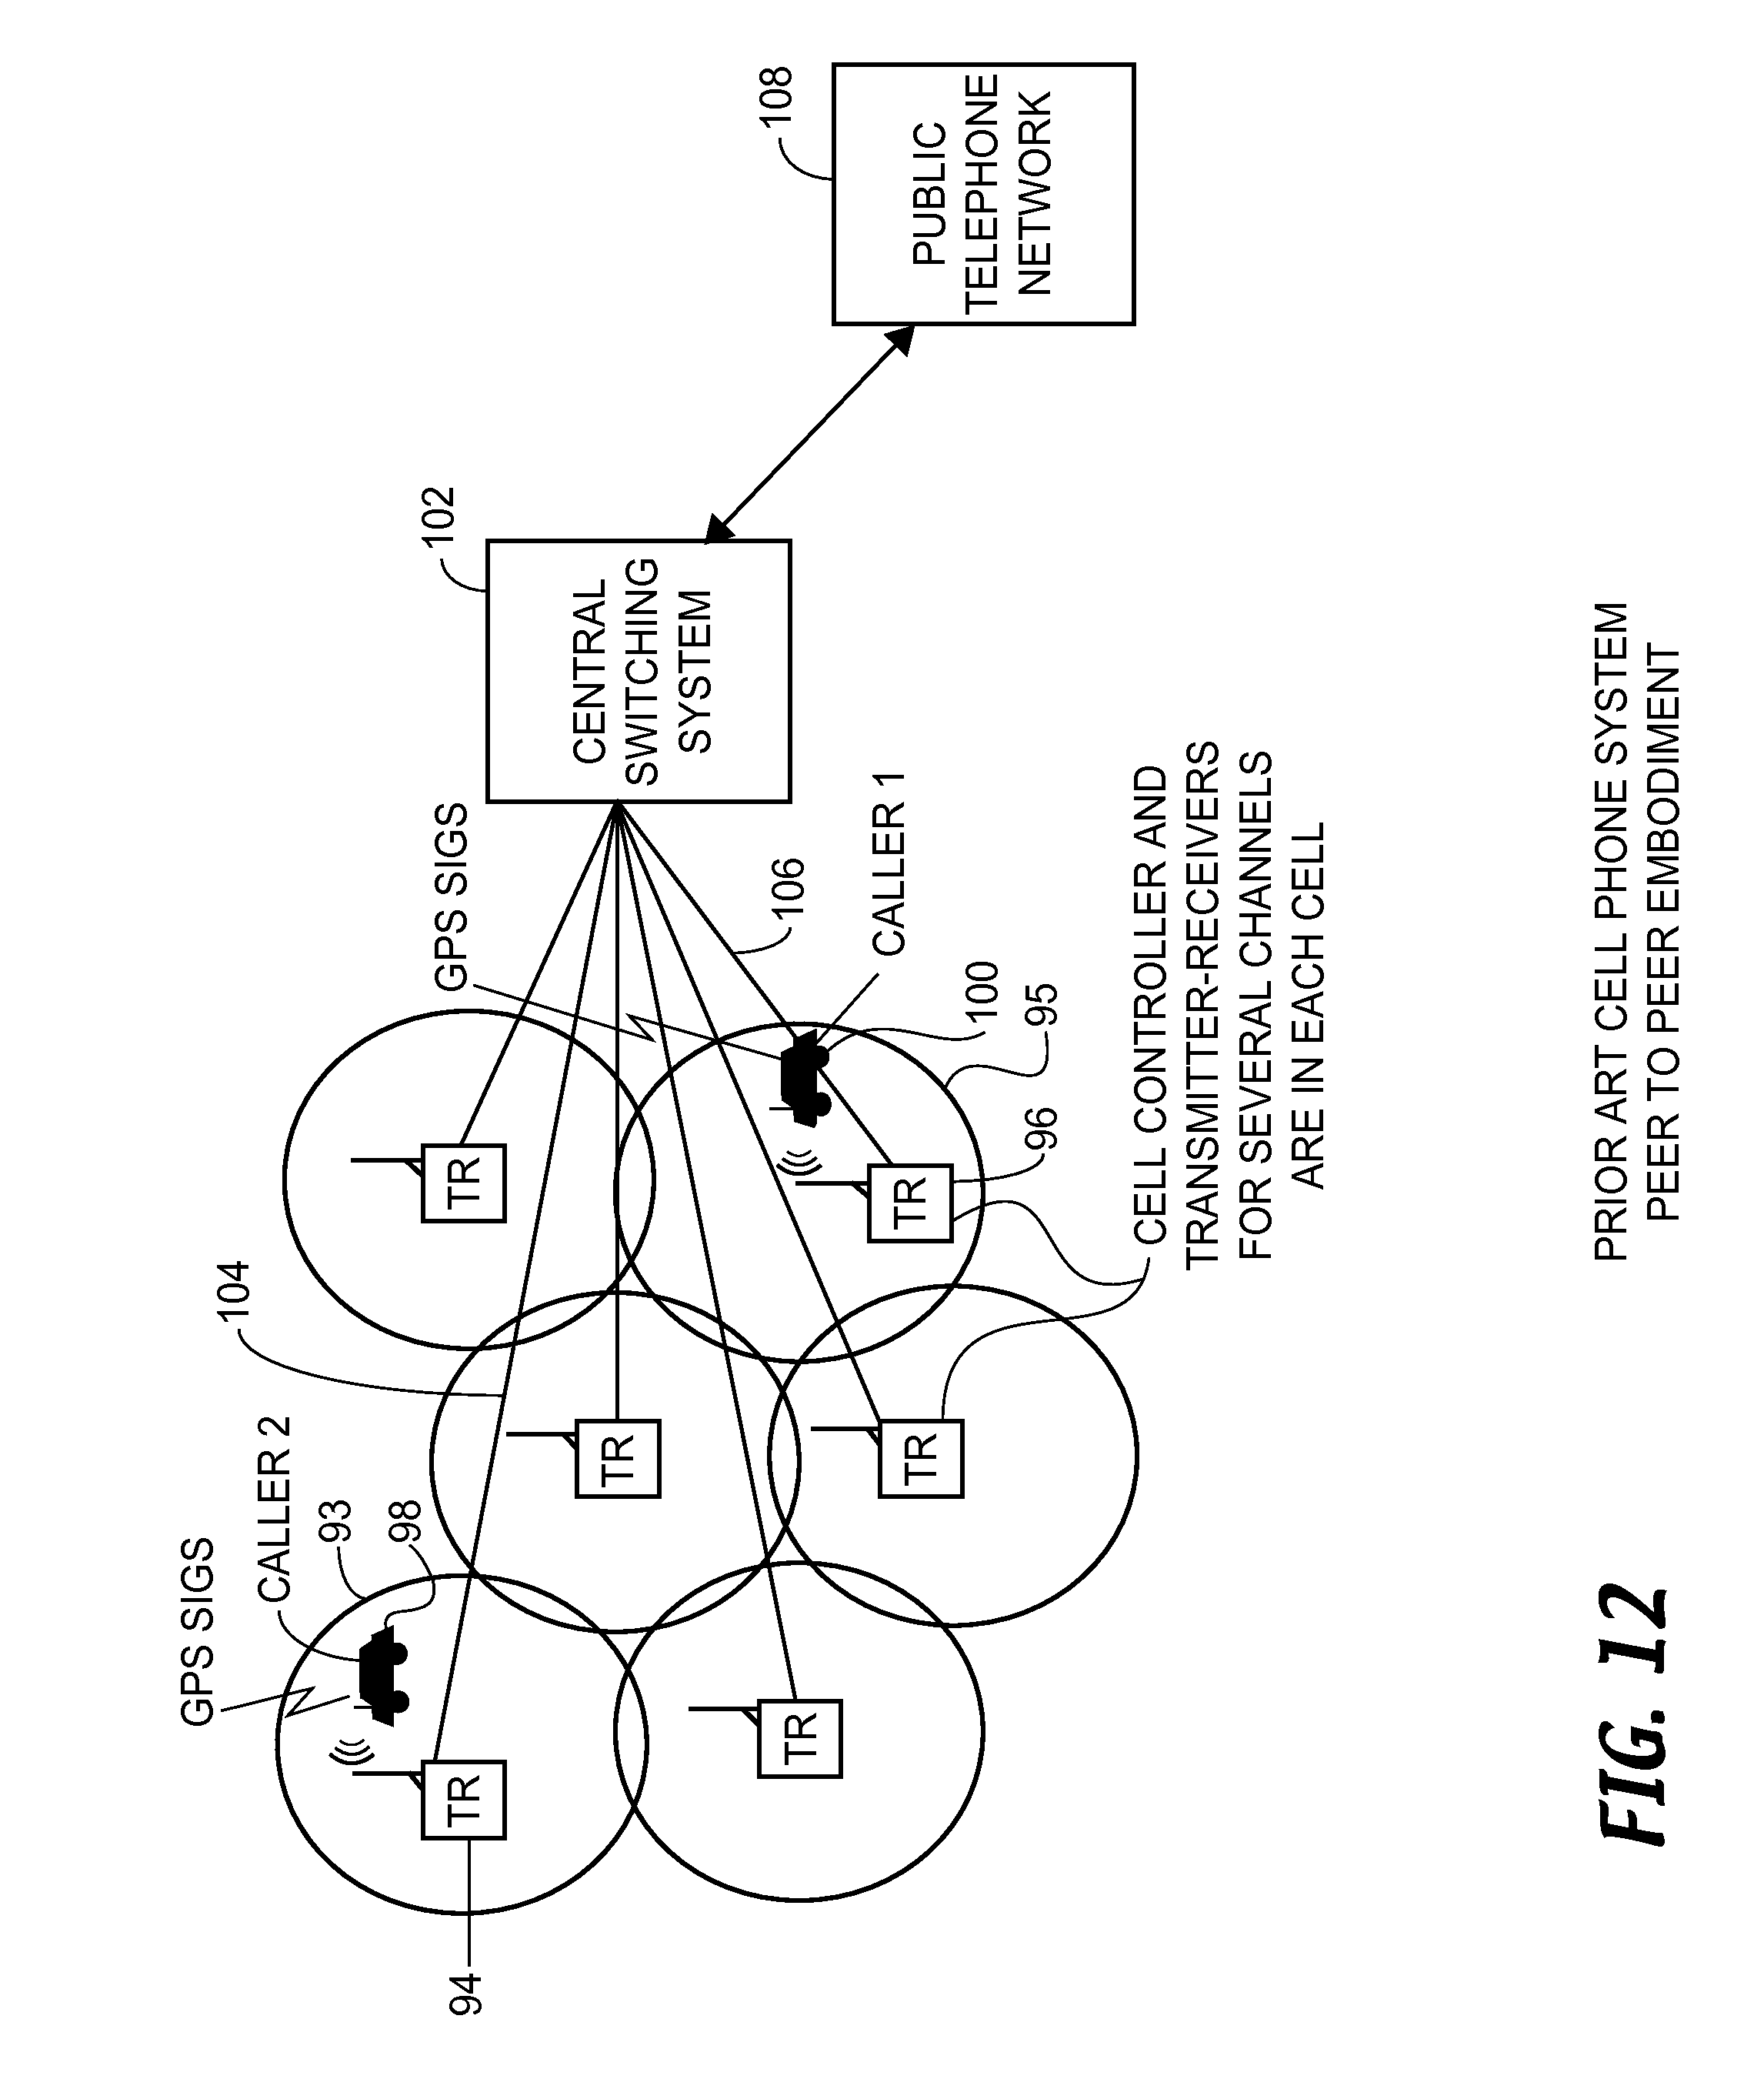 us20140295895a1 methods and systems for sharing position data  us20140295895a1 methods and systems for sharing position data between subscribers involving multiple wireless providers patents